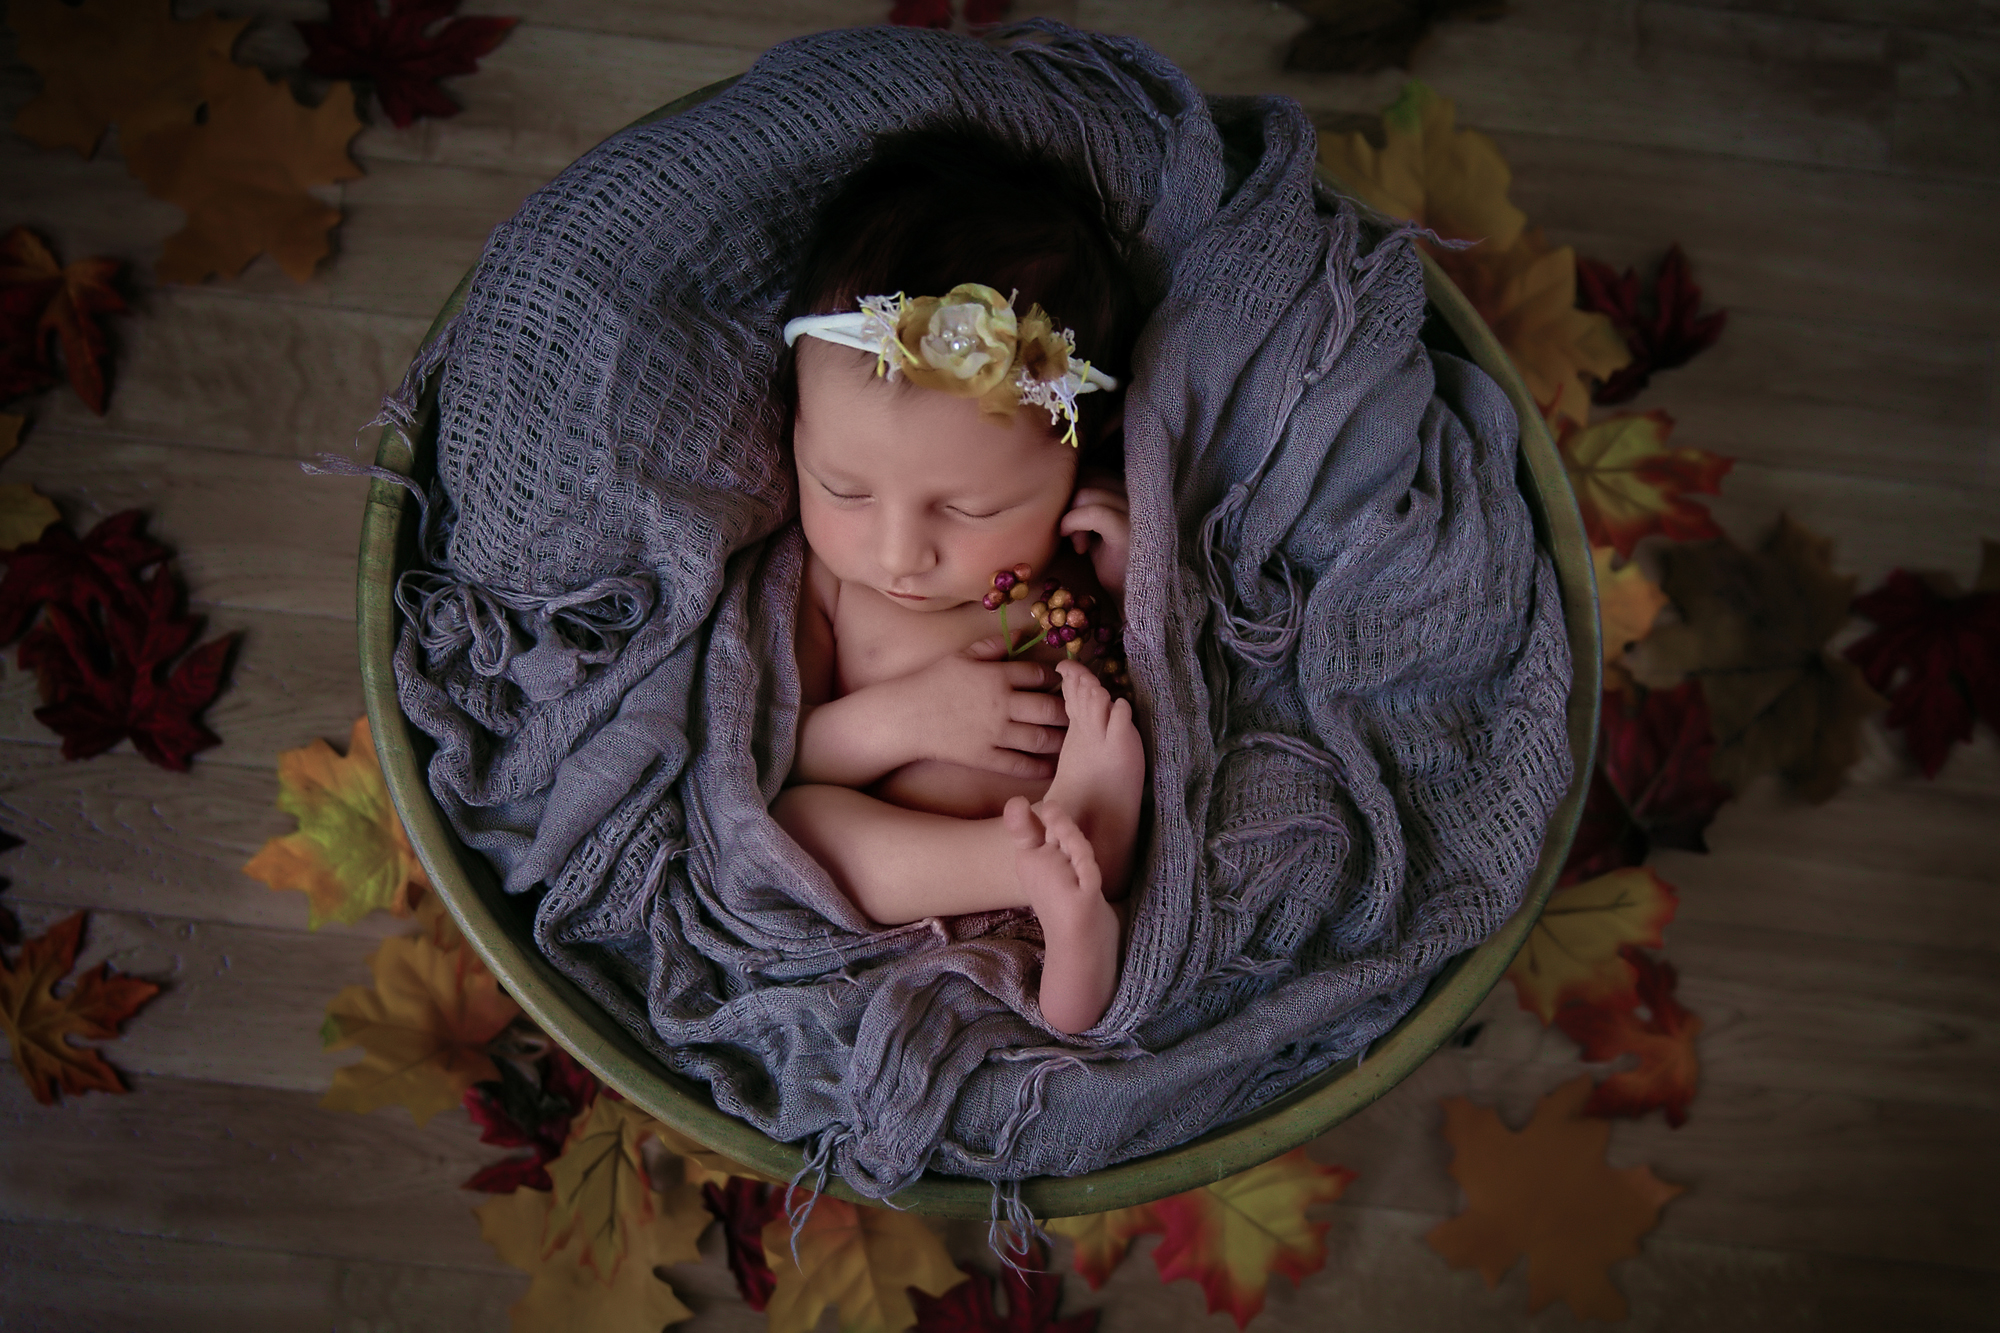 Fall inspired newborn photoshoot setup. Baby girl is lying in a wooden bowl surrounded by autumn leafs. Newborn Photoshoot ideas. Calgary and Airdrie newborn baby photographer - Milashka Photography